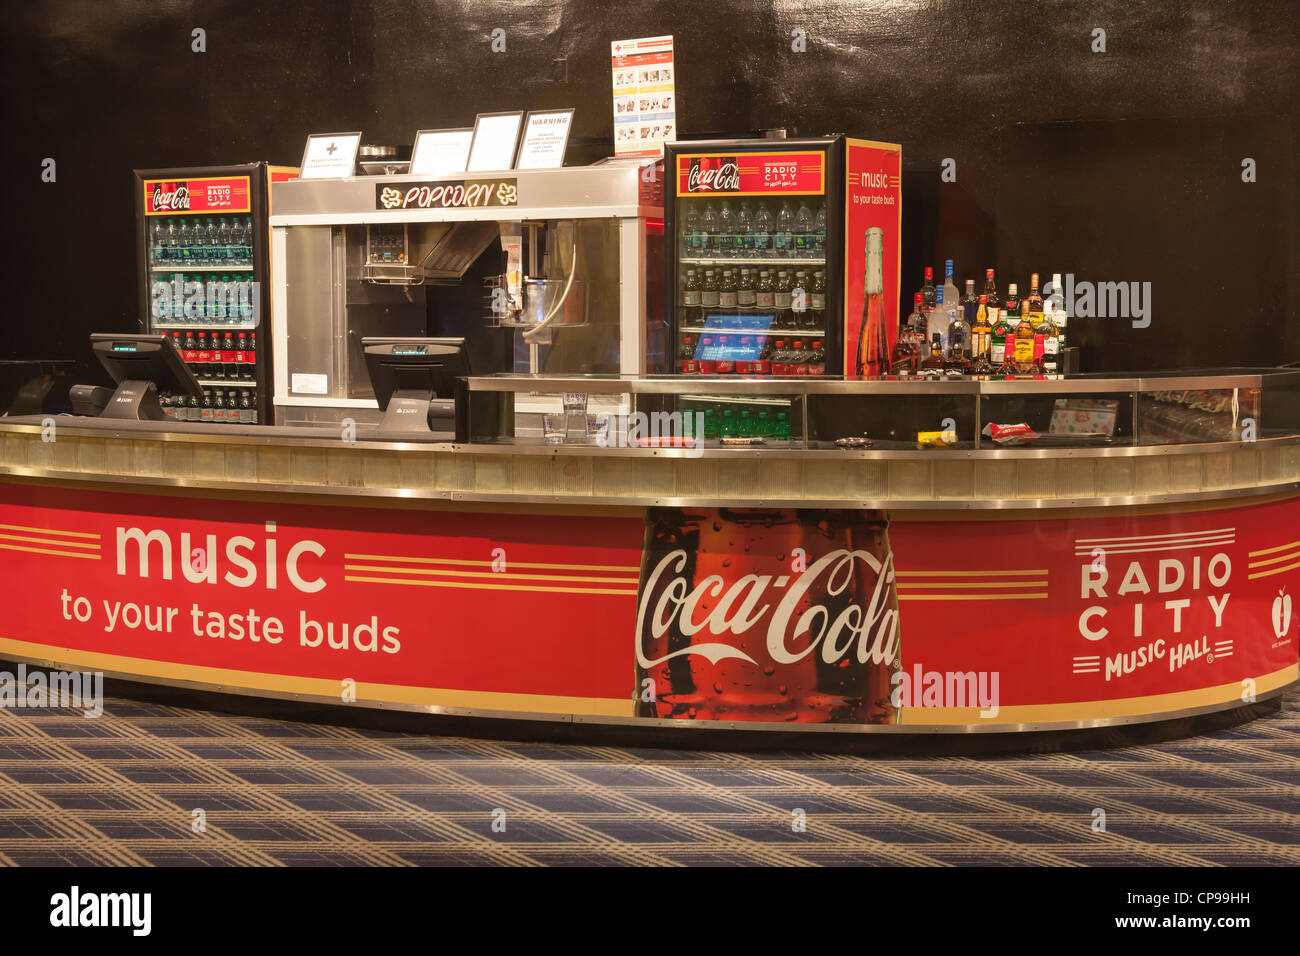 A concession stand in historic Radio City Music Hall in New York City. - Stock Image